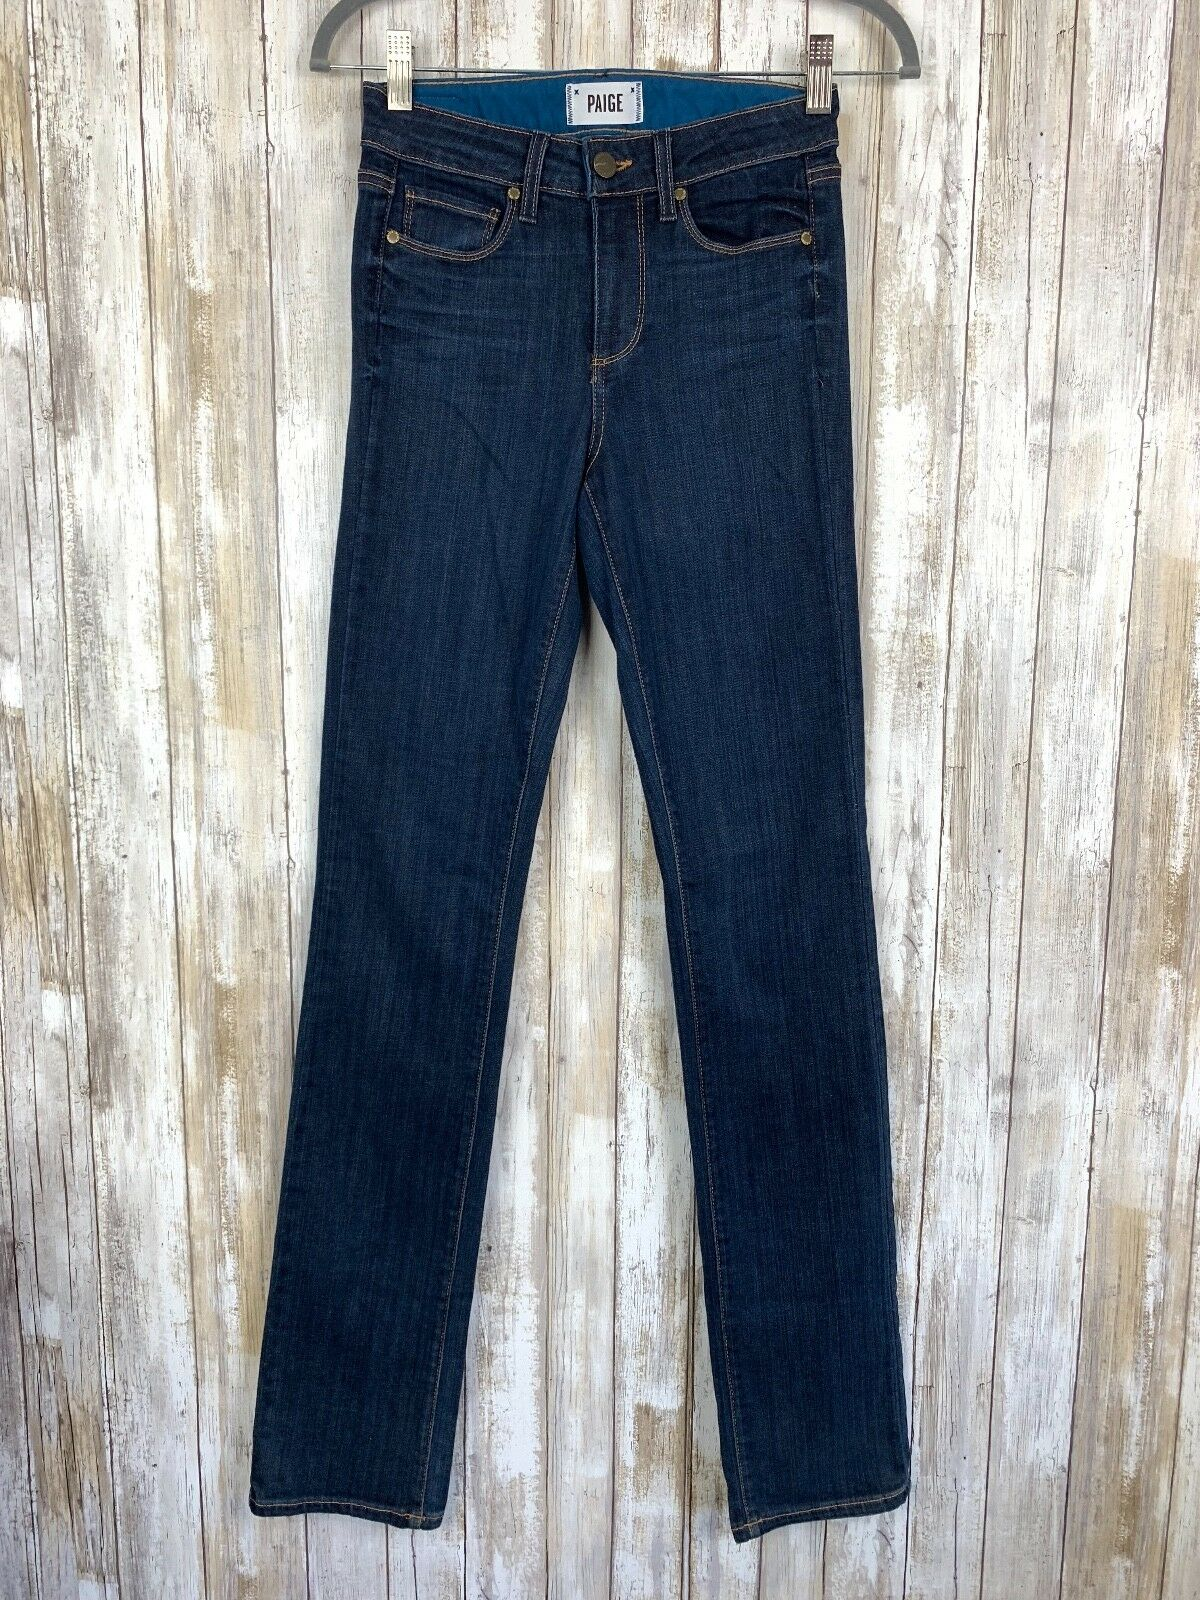 Paige Hoxton Straight Jeans Dark bluee Delancy Wash Stretch 24 Classic